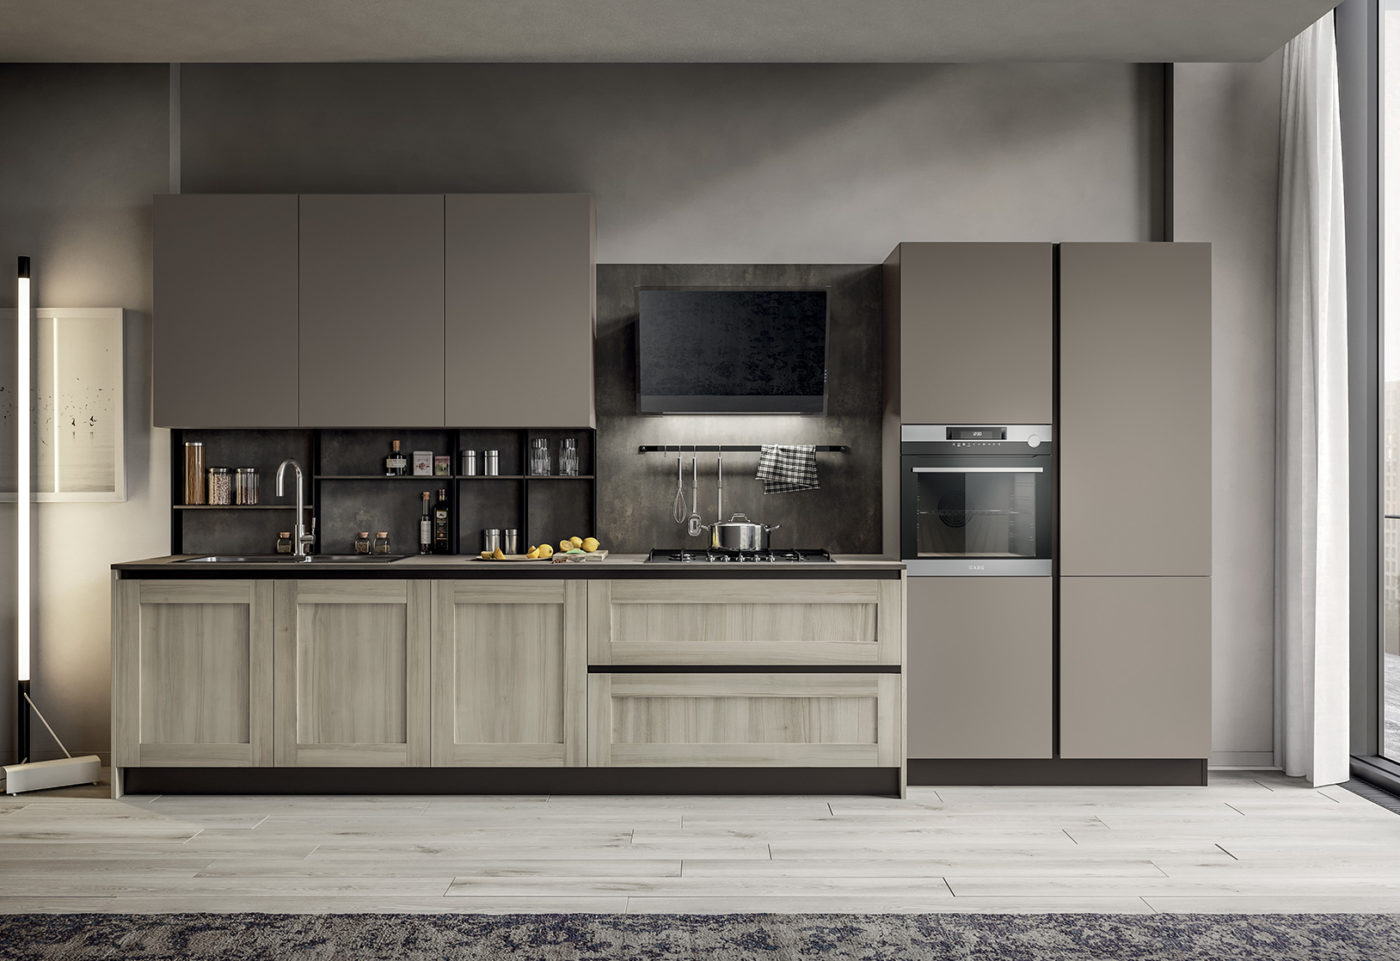 New finishes and compositions for Cloe by Arredo3, featuring versatility - 5